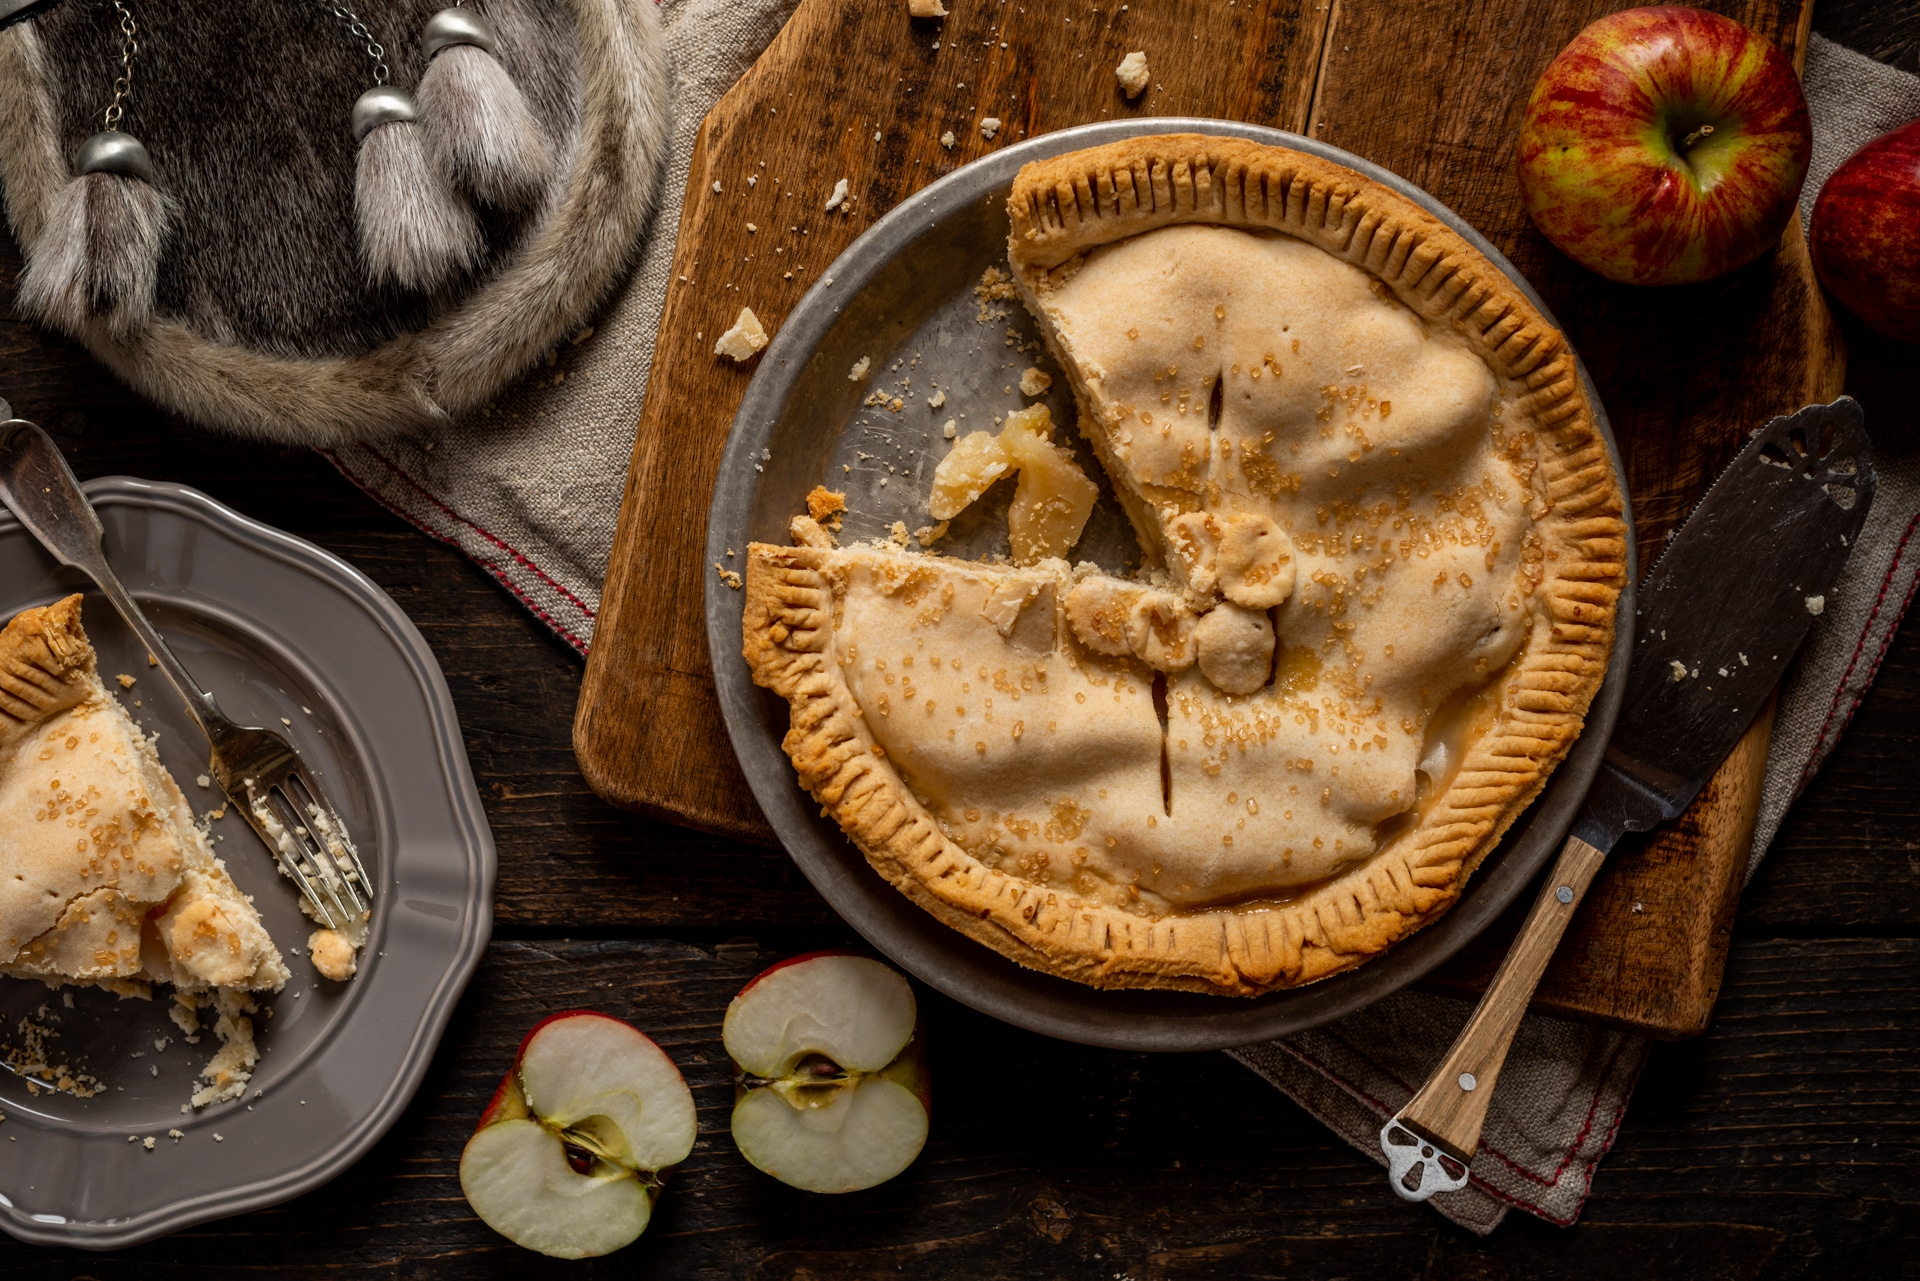 Riverdale Orchard baked apple pie